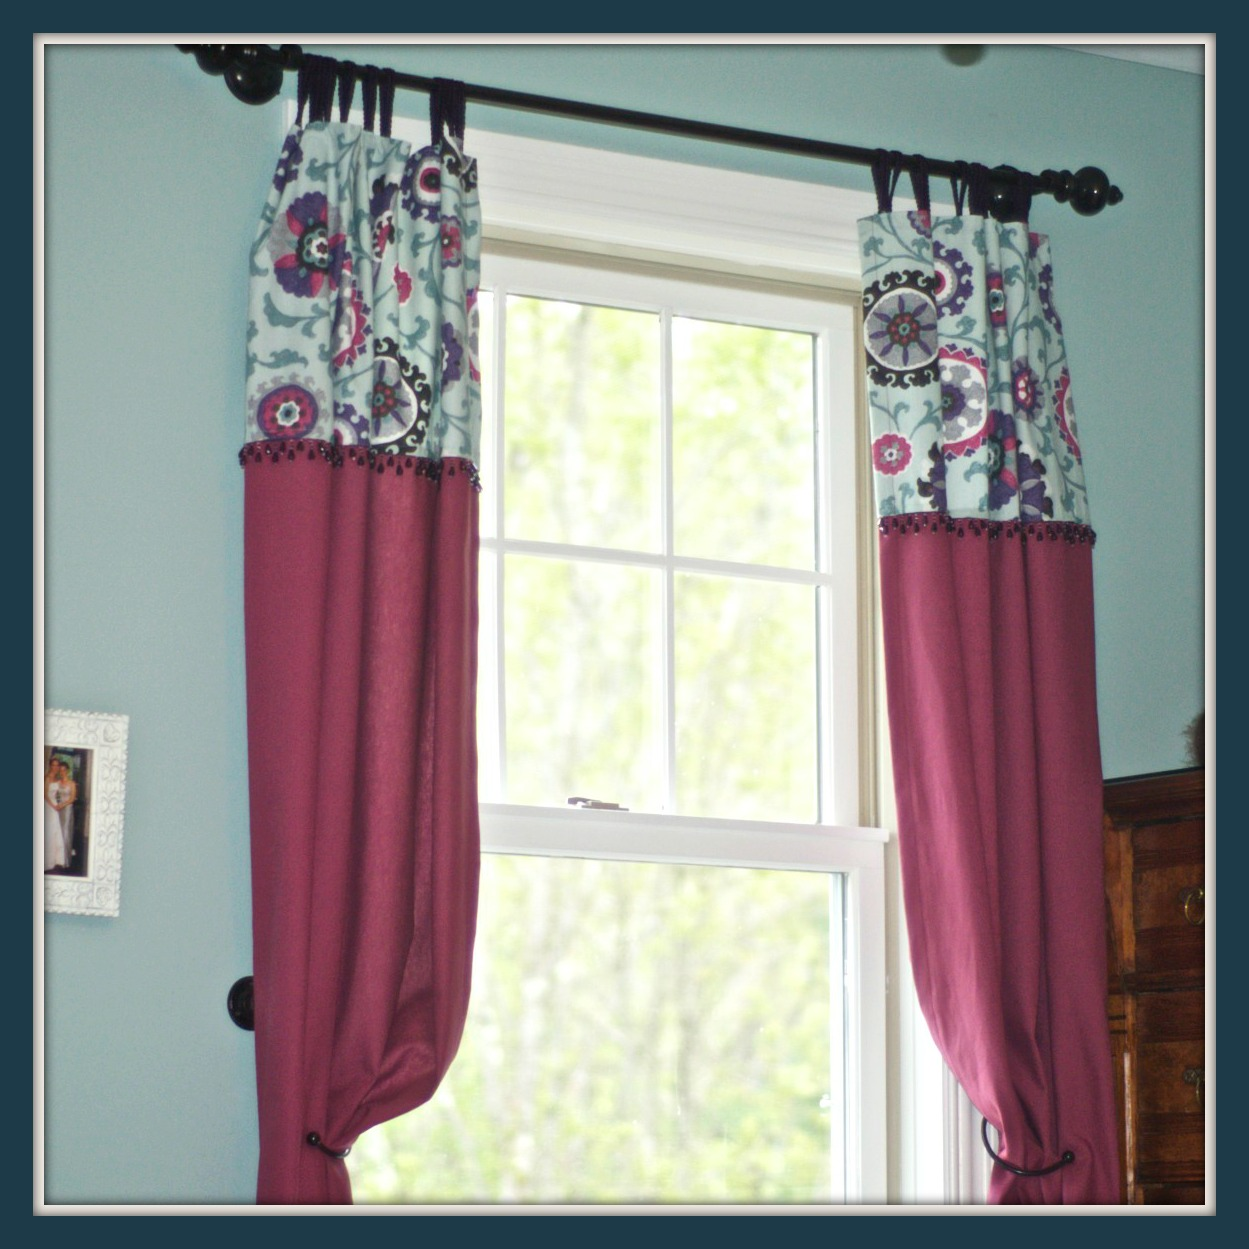 How To Sew Curtains With Two Fabrics And Detailing